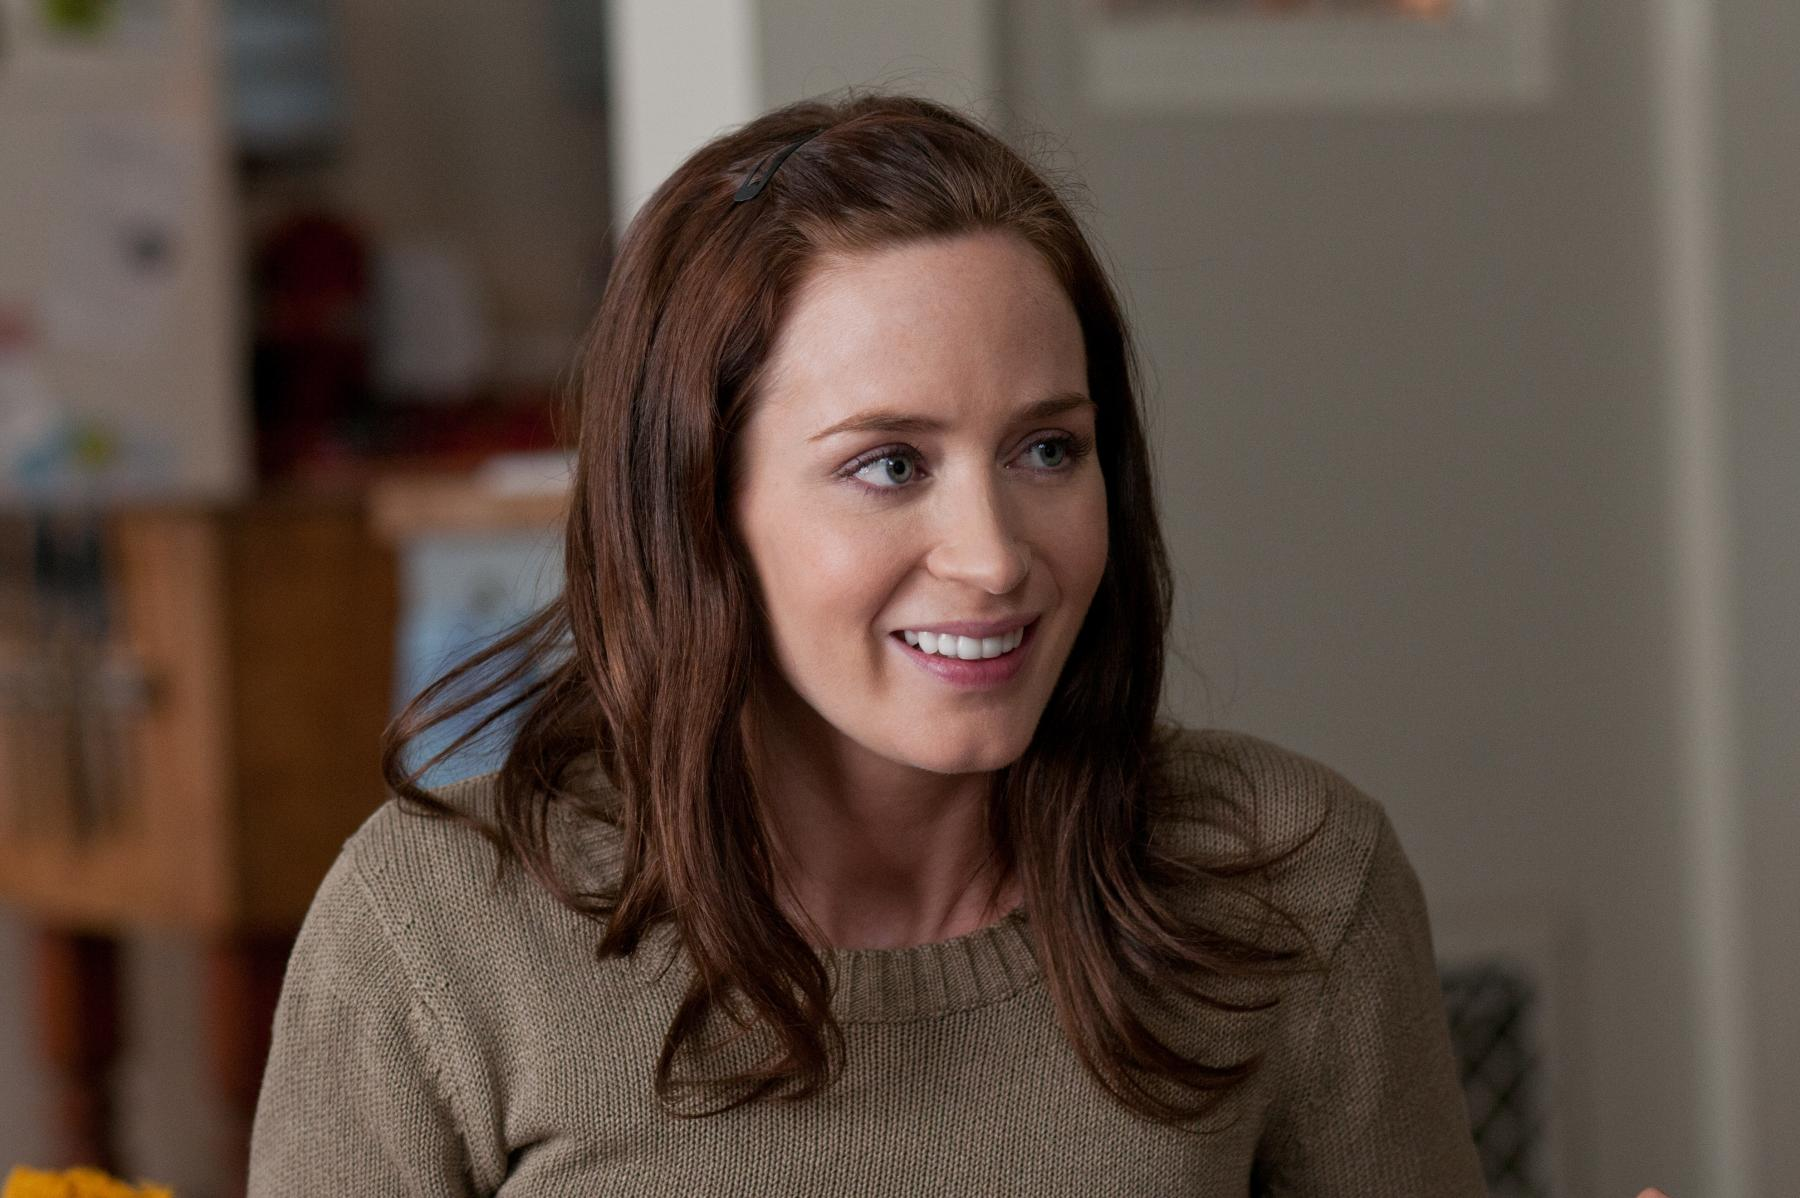 Emily Blunt in the five-year-engagement